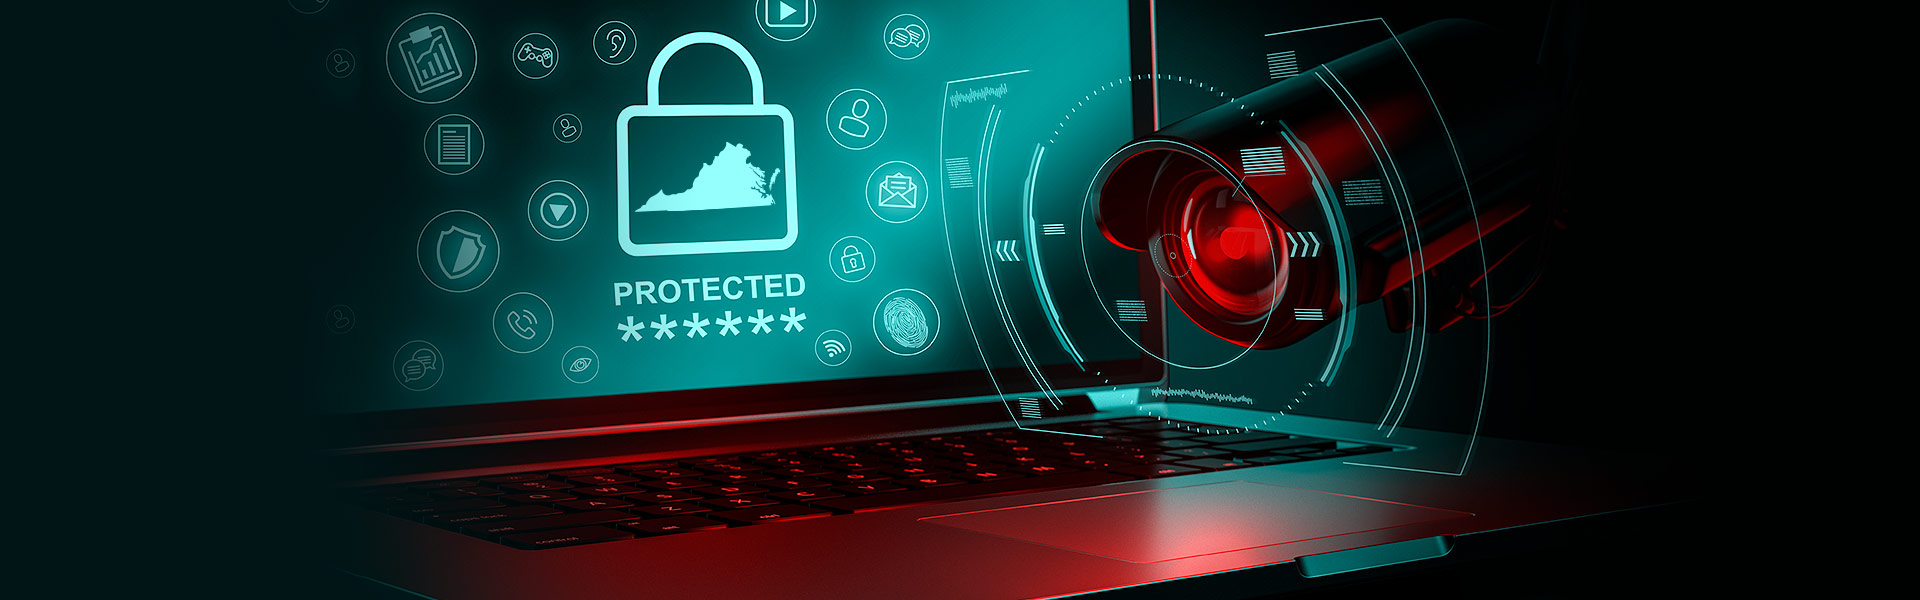 Virginia Consumer Data Protection Act Joins in on Consumer Privacy Protections intro visual